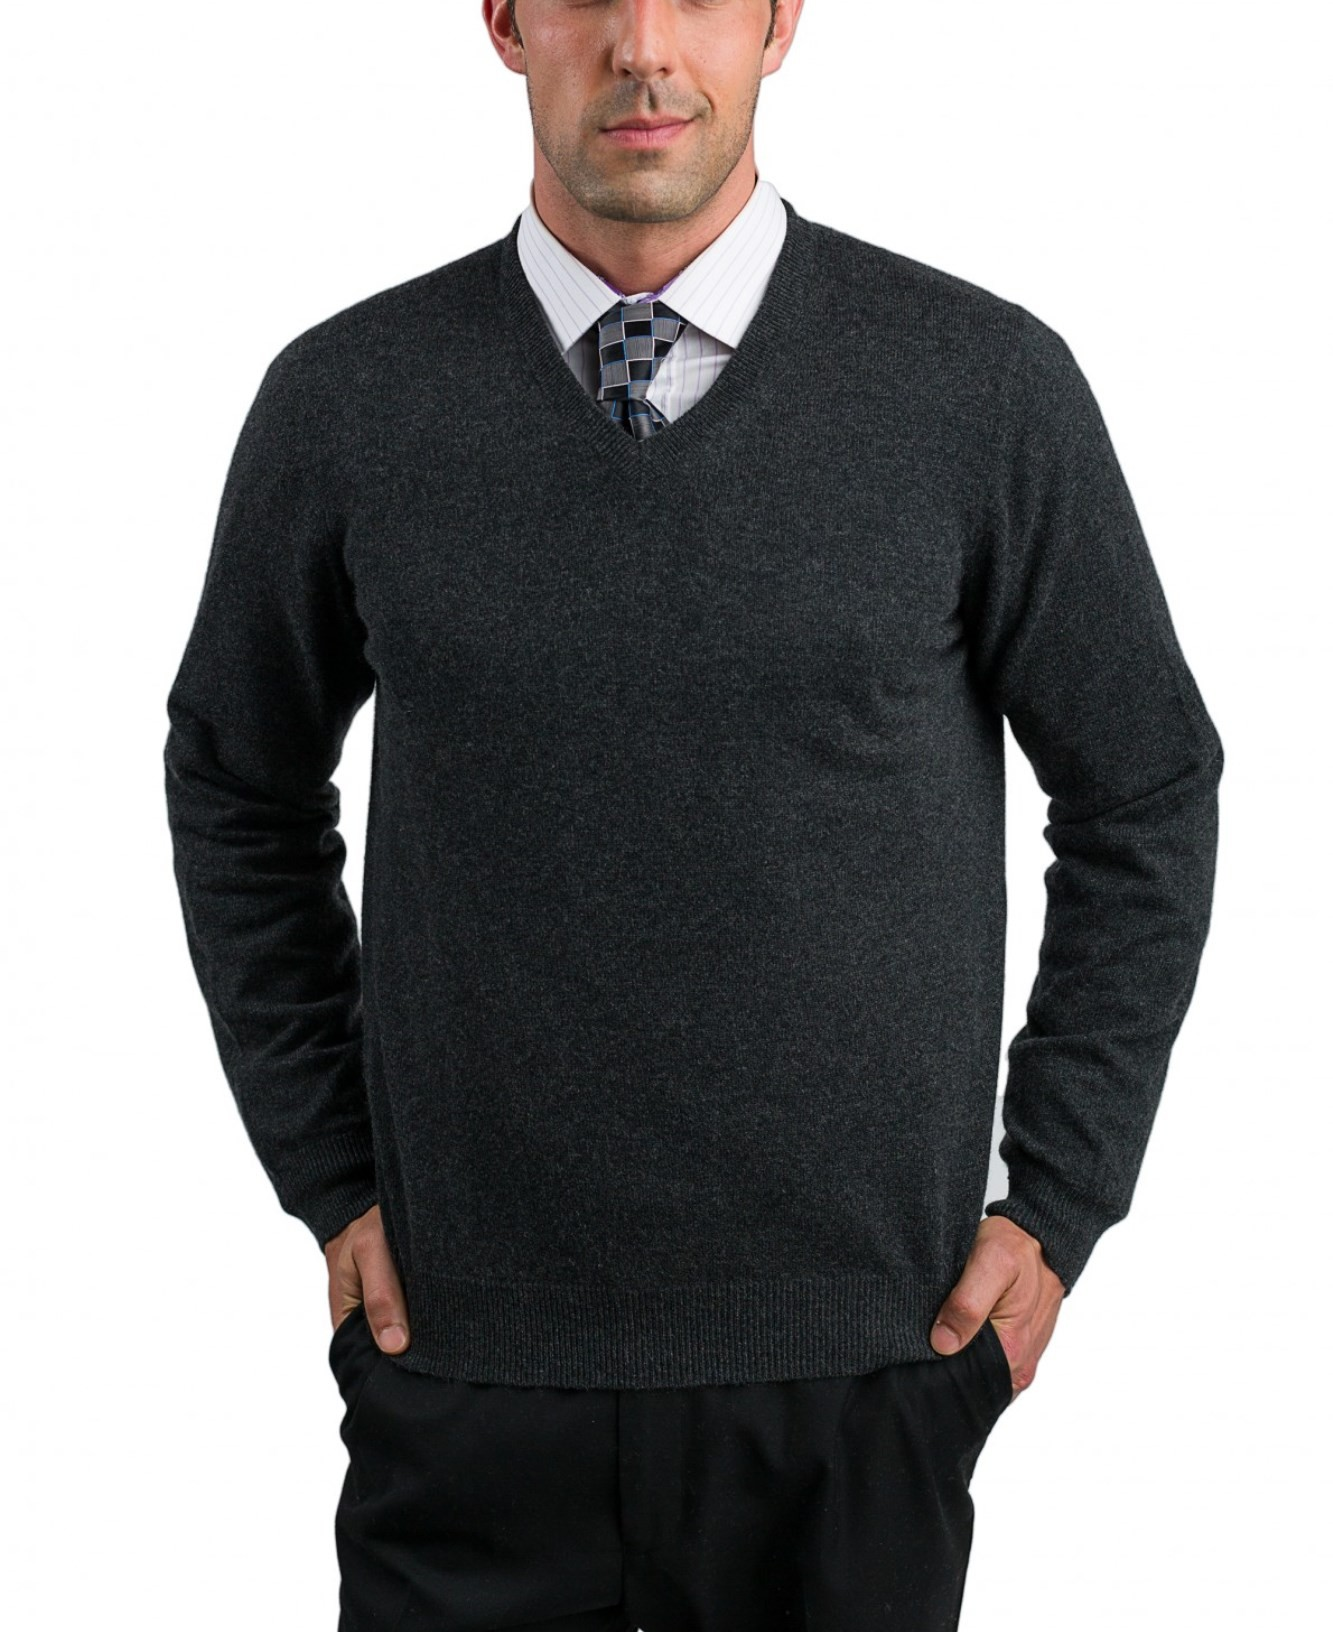 Charcoal Men's V-Neck Sweaters - 100% Cashmere Made in Scotland